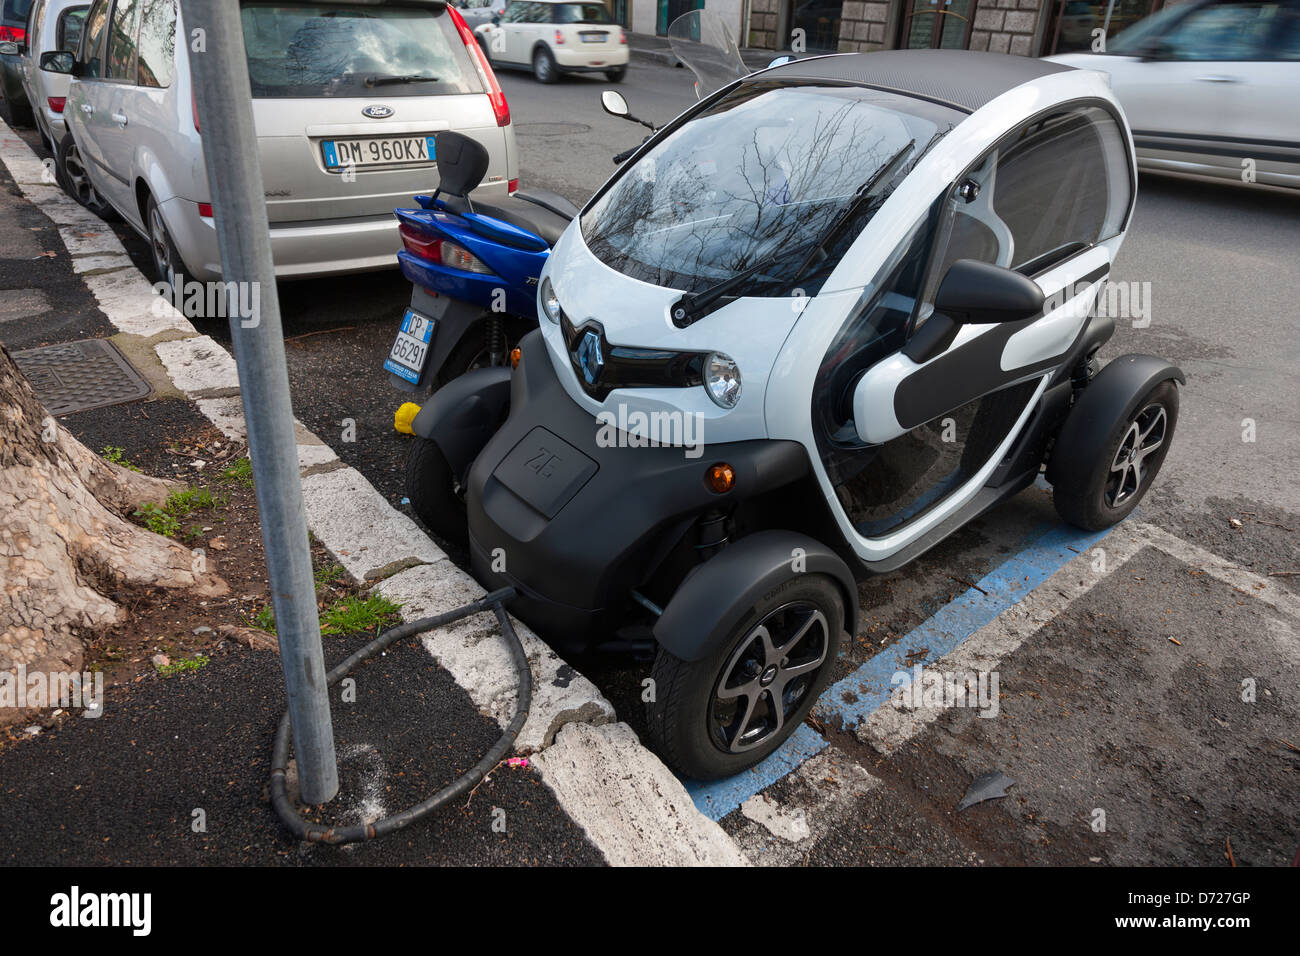 Renault Ze Zero Emission Electric Vehicle Chained To A Lamp Post